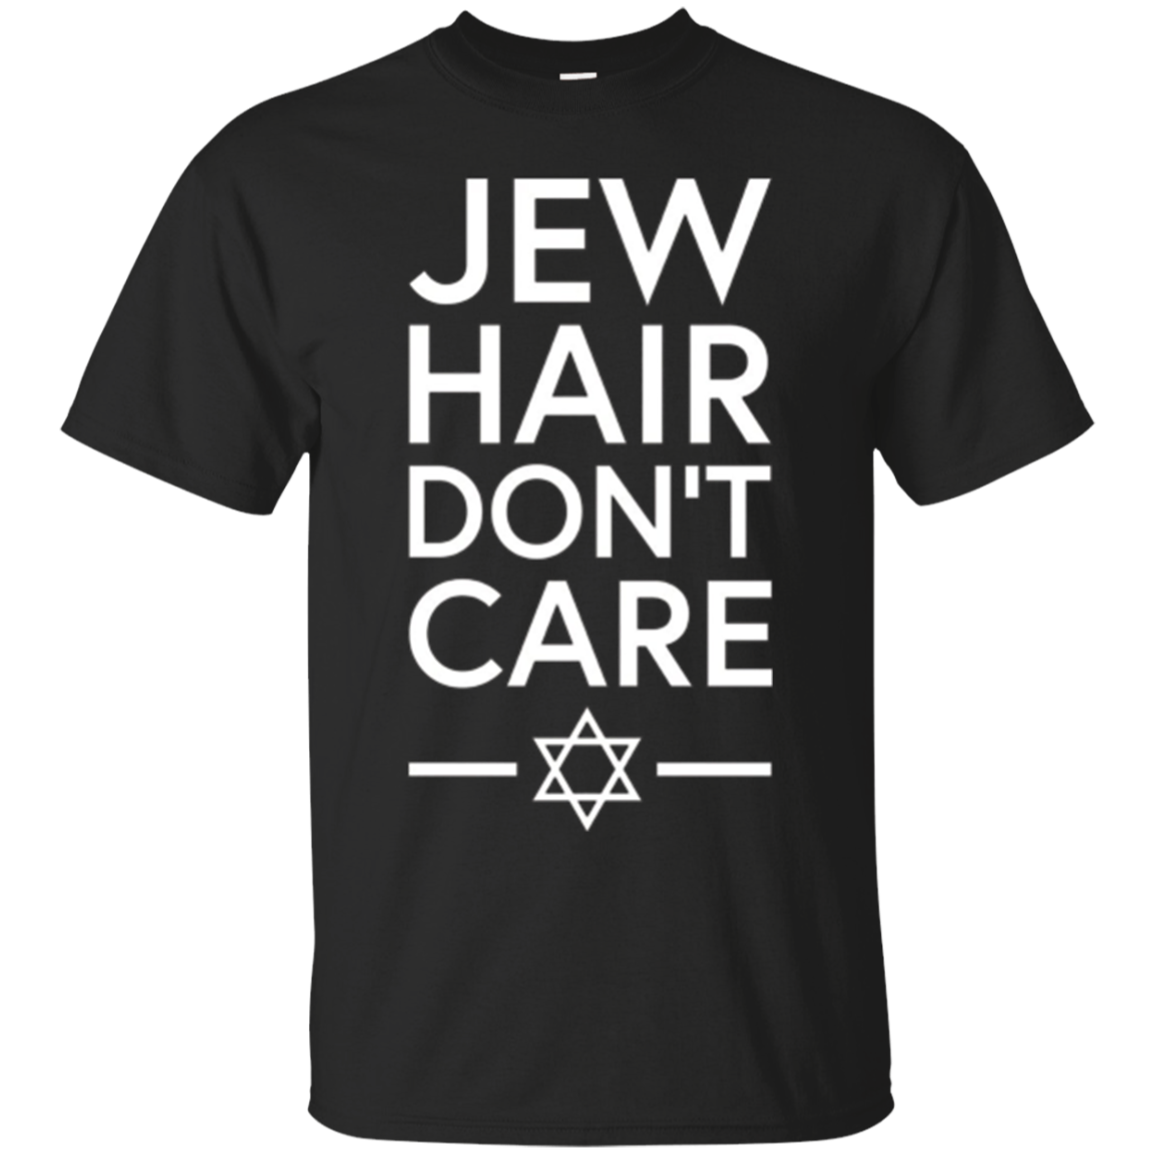 Jew Hair Don't Care Funny Jewish T-Shirt